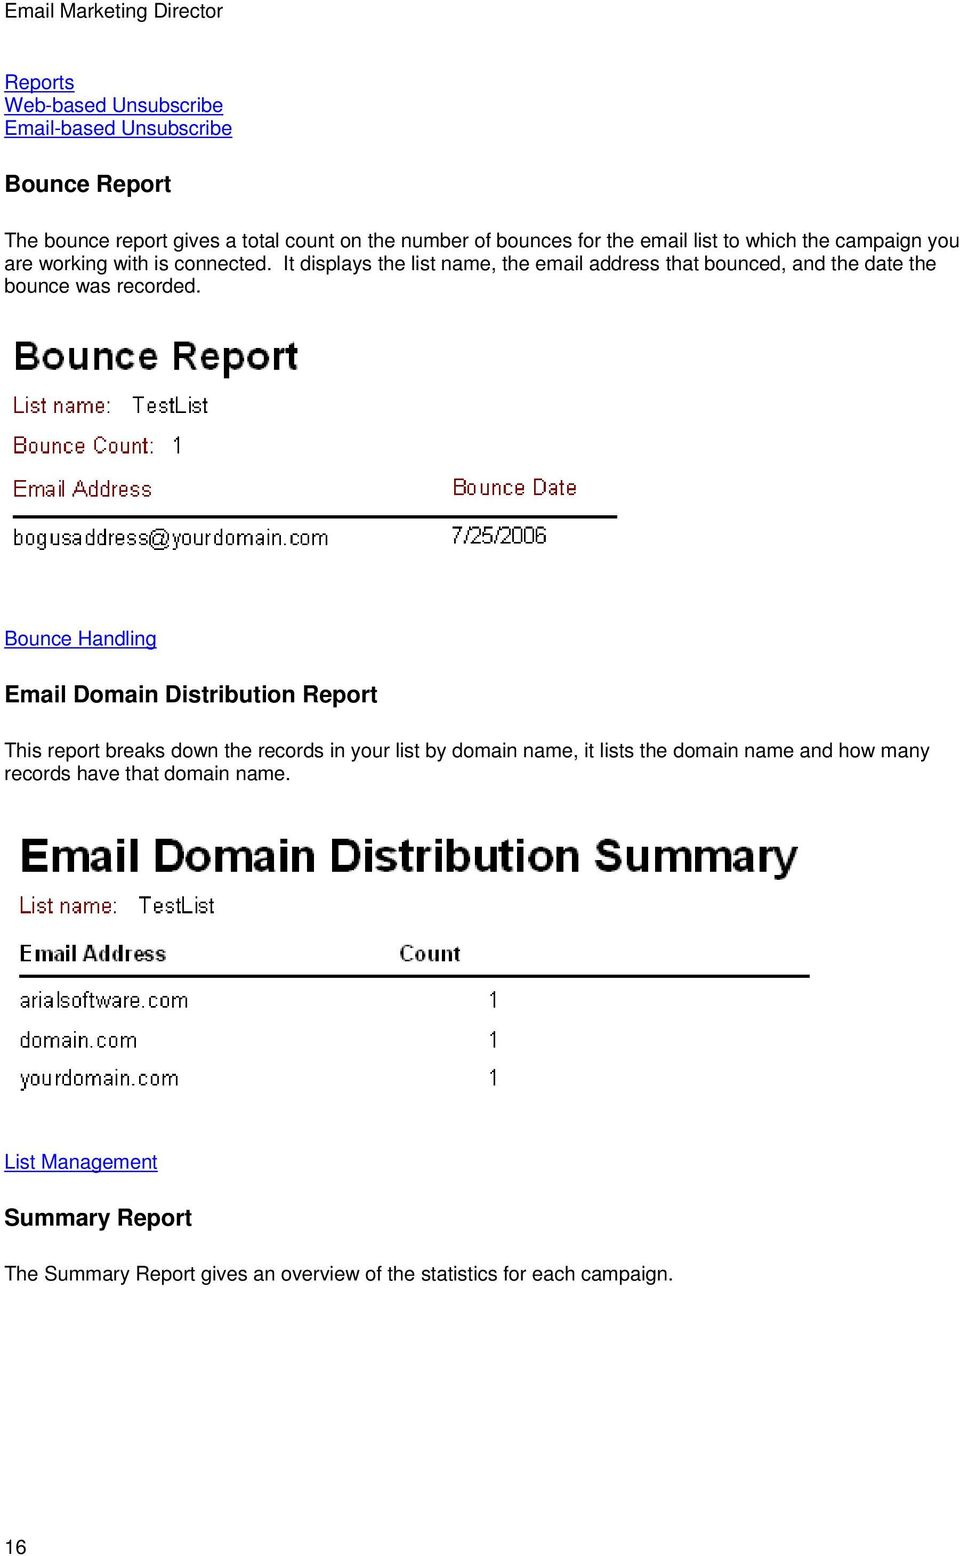 It displays the list name, the email address that bounced, and the date the bounce was recorded.